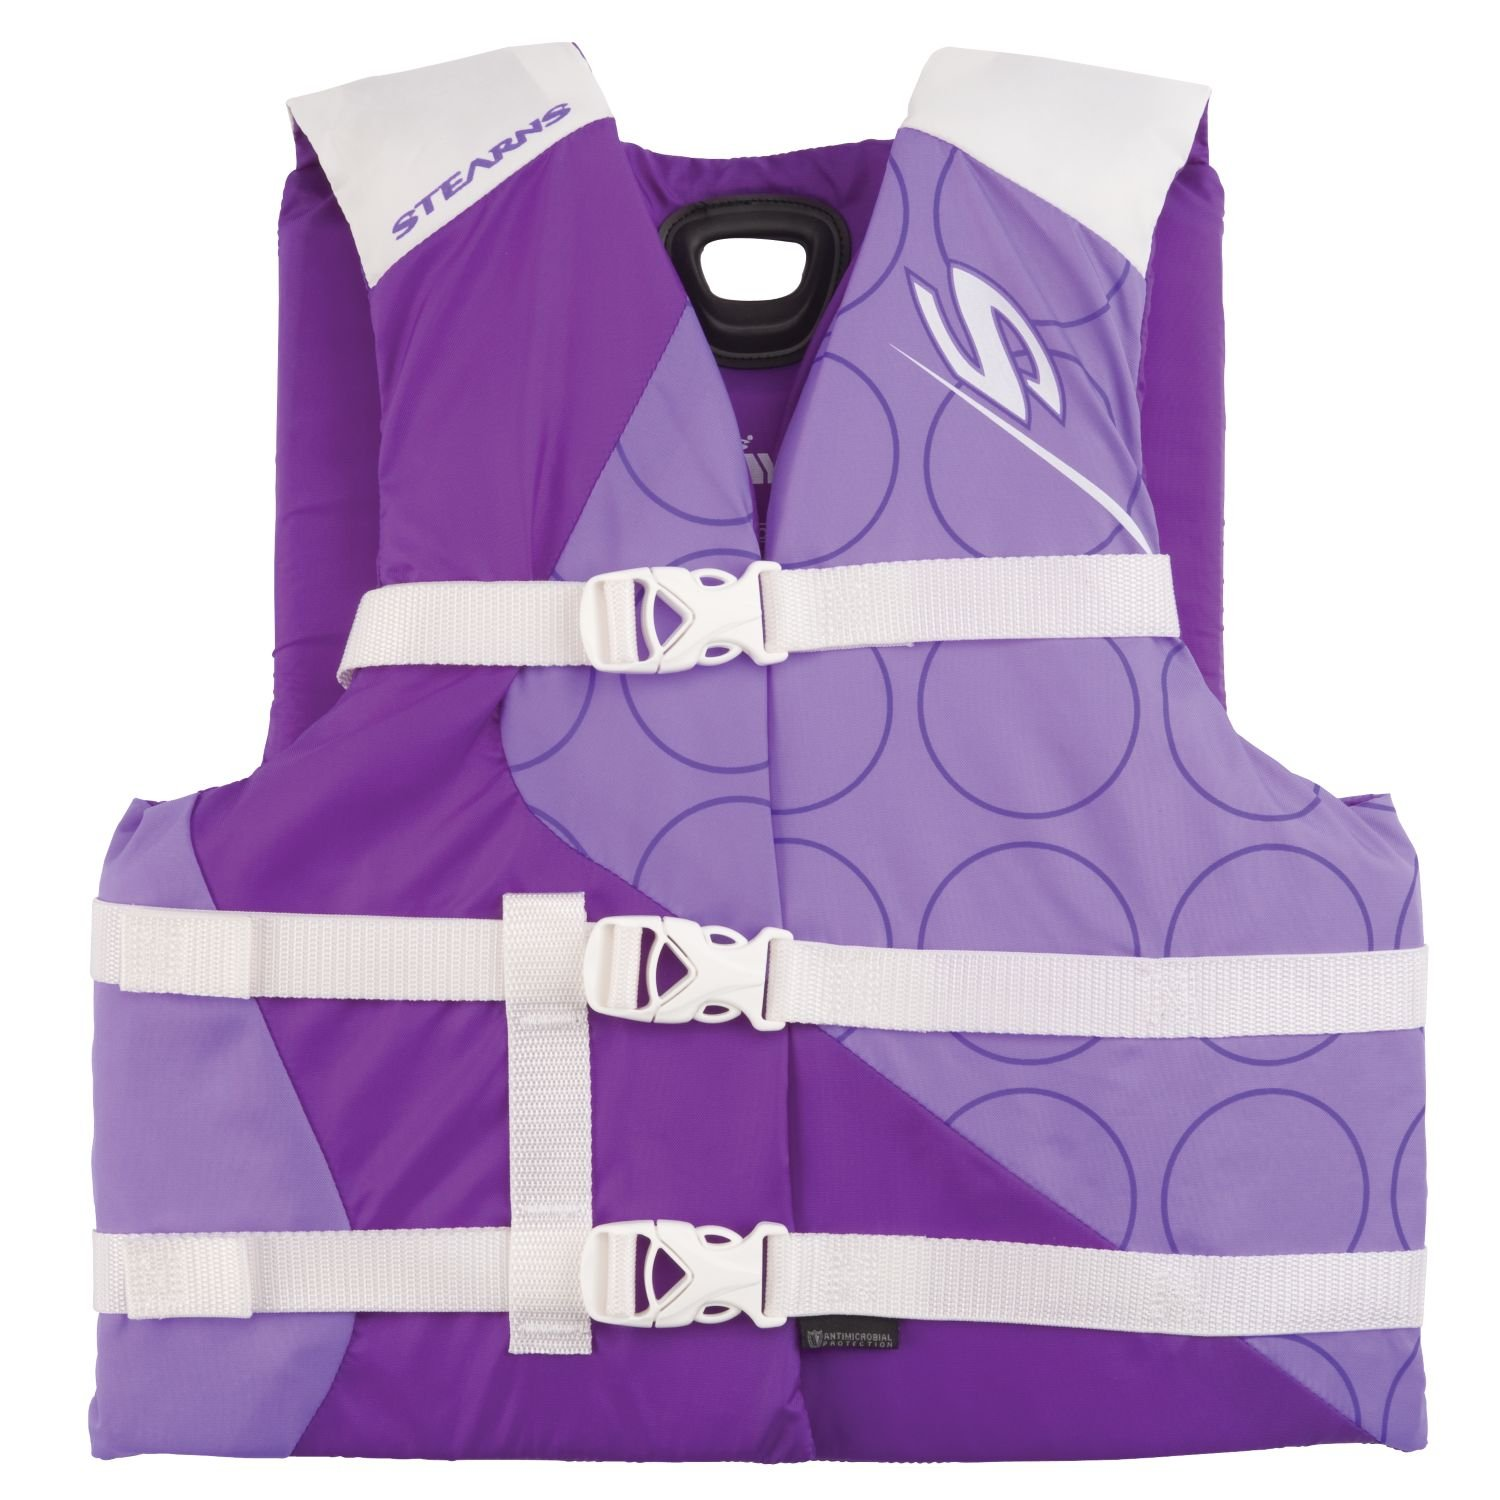 Stearns Youth Girls Antimicrobial Life Jacket